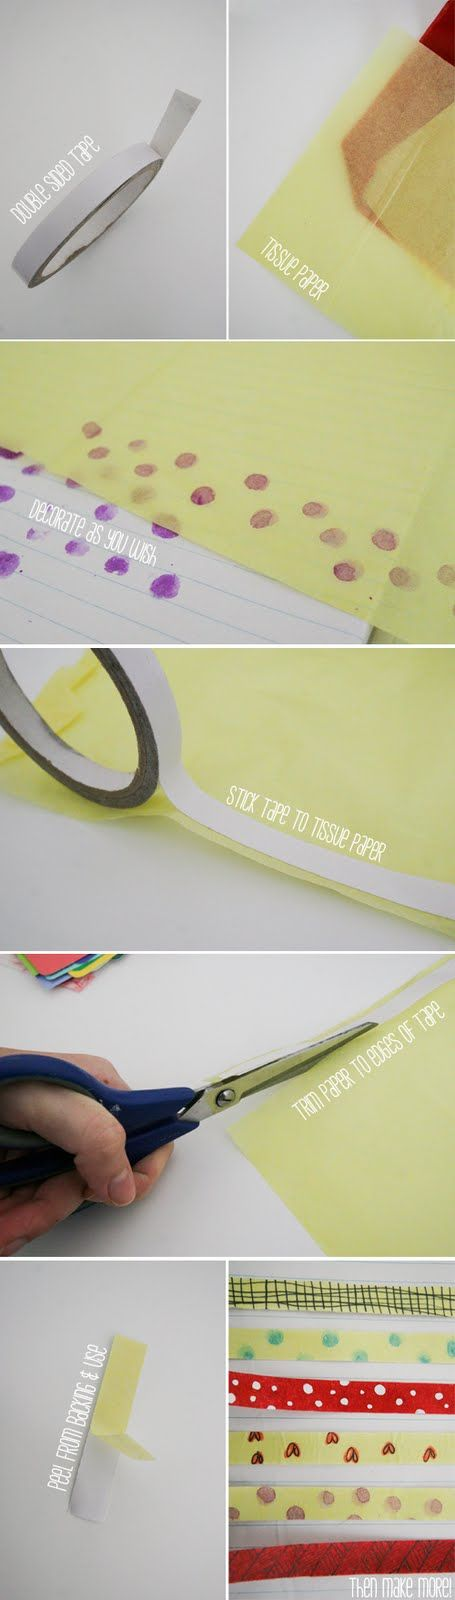 DIY washi tape  Think I would use different pattern papers or small print fabric.  Great  use for scraps. Jury is still out on this art form